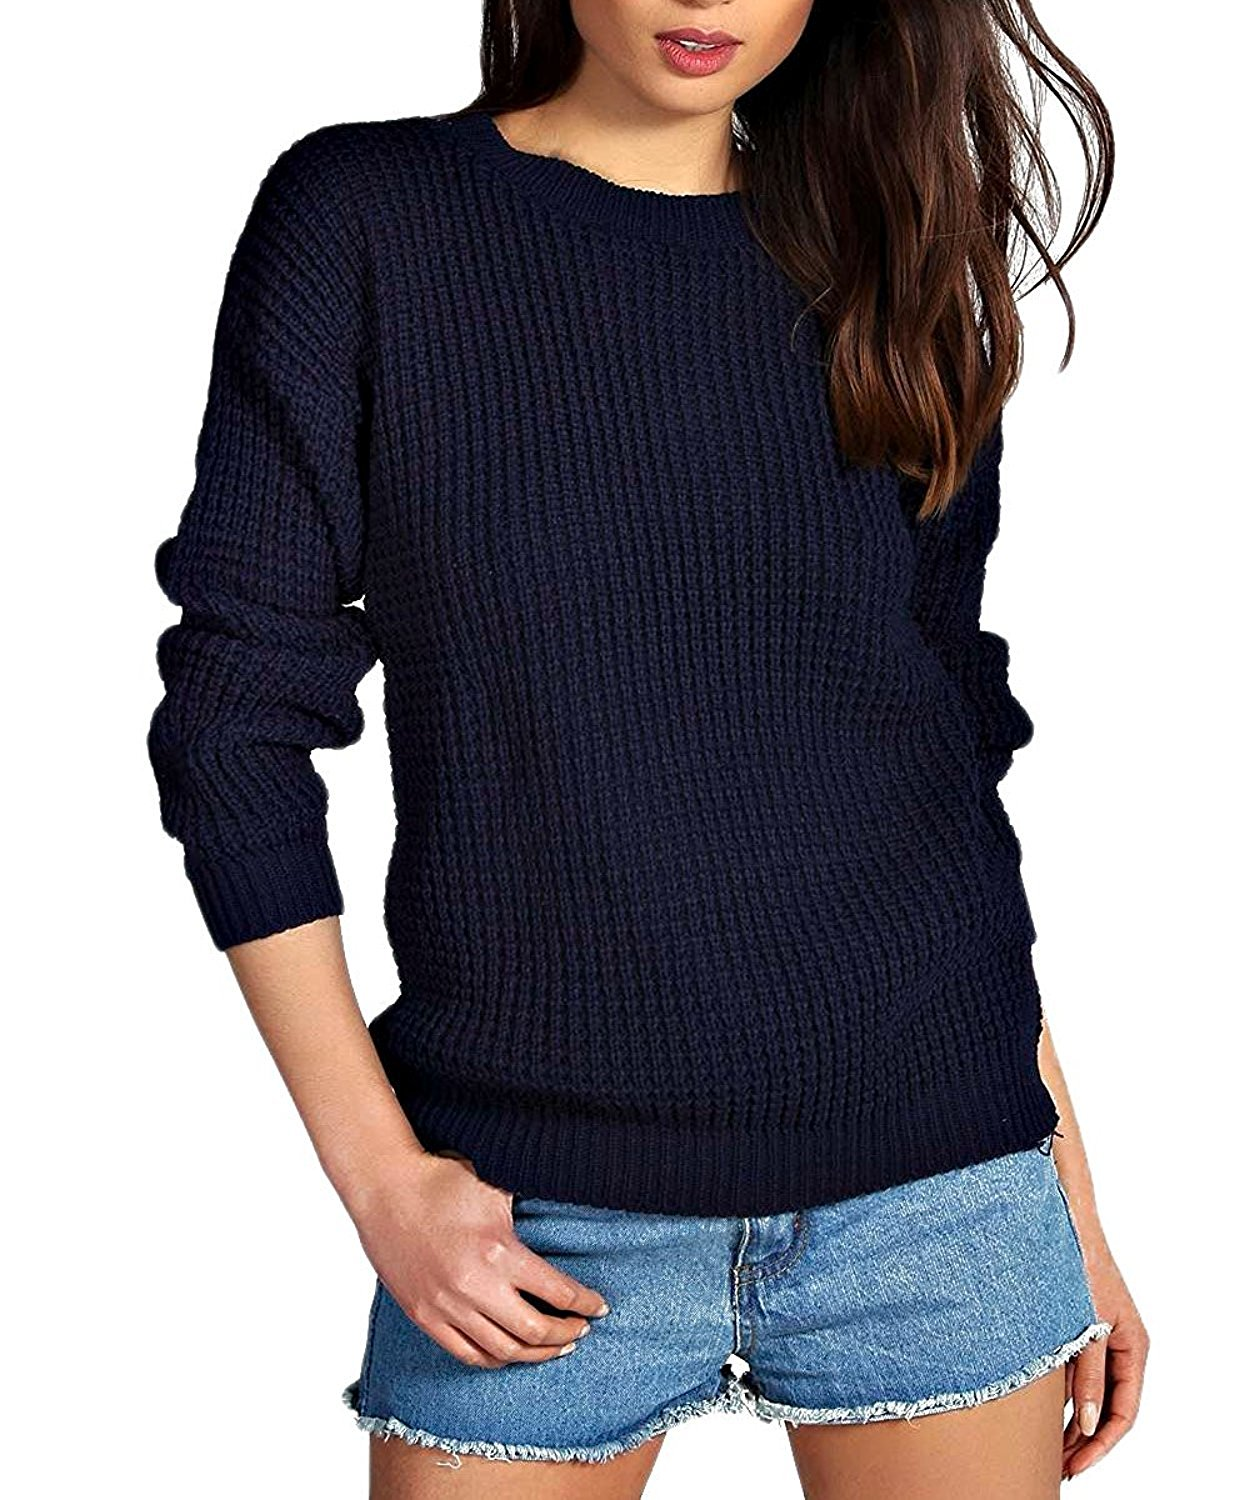 c72f267aa9a161 Get Quotations · Crazy Girls Womens Ladies Chunky Oversized Baggy Knitted  Jumper Sexy Sweater Top